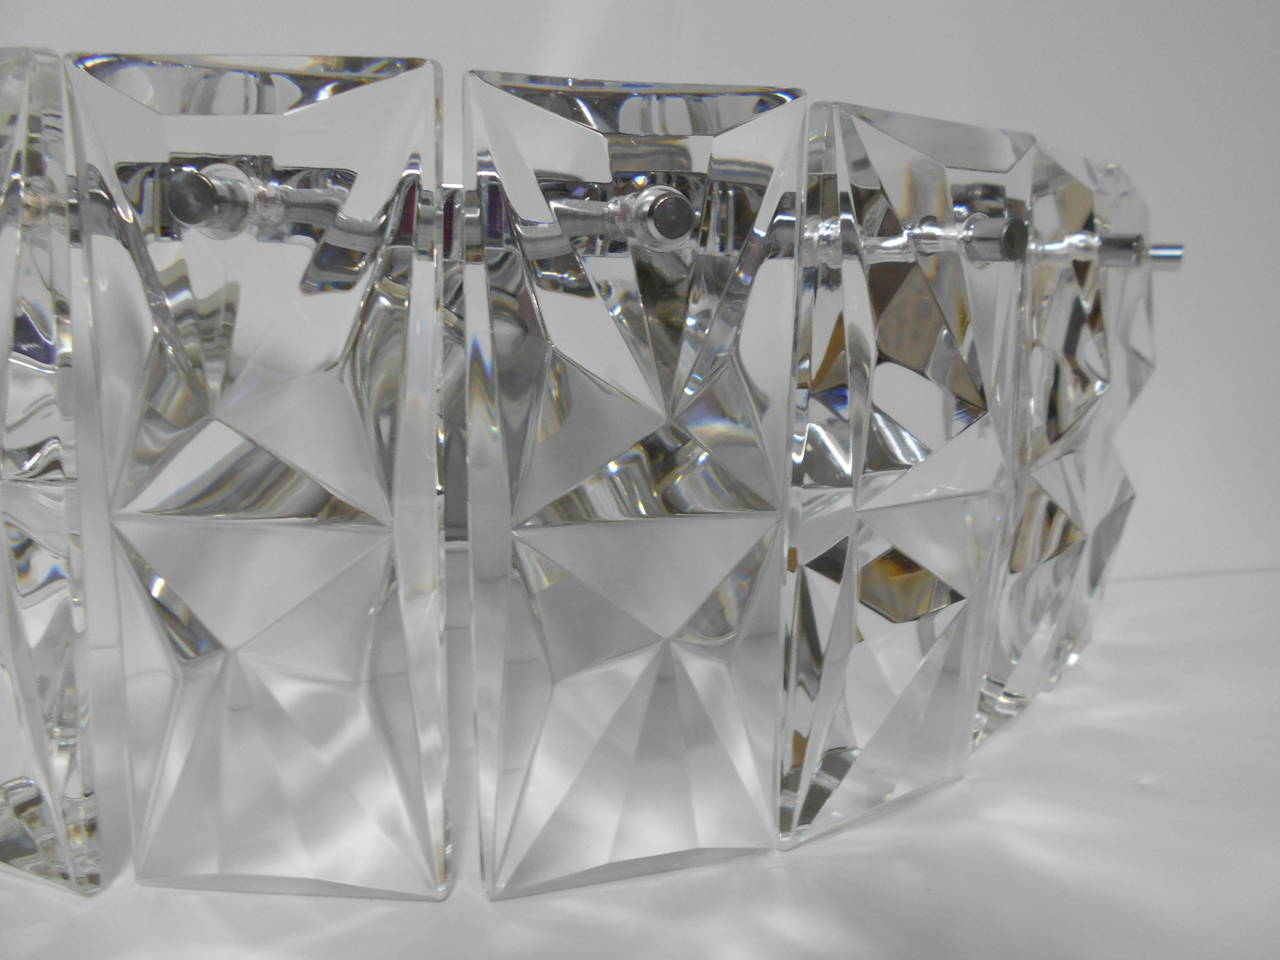 Pair of Large Chrome and Crystal Wall Sconces by Kinkeldey at 1stdibs